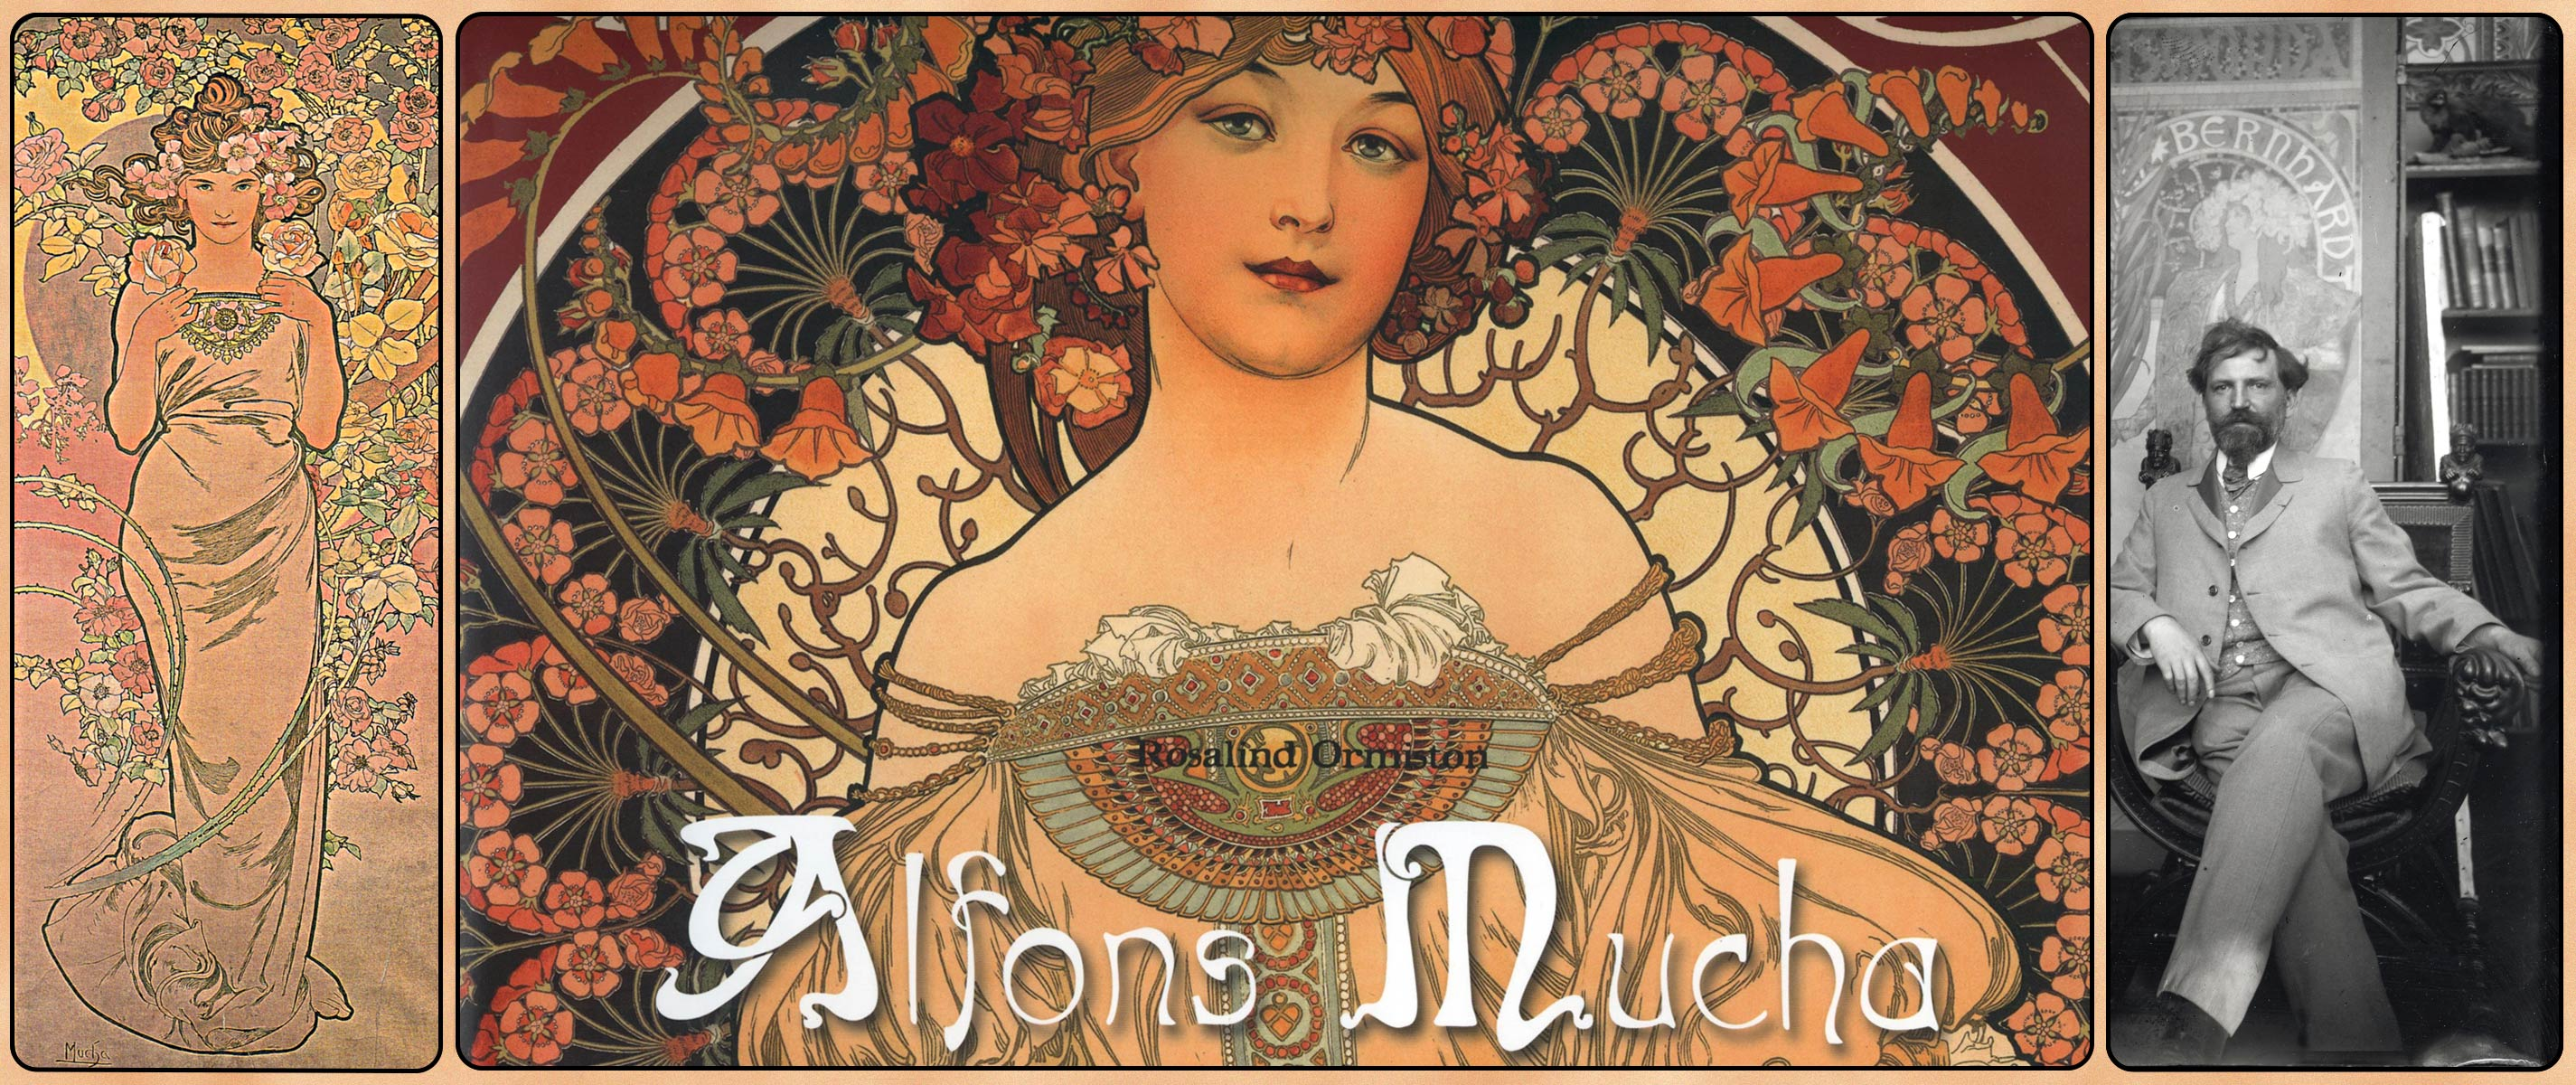 alfons-mucha-gallery-of-art-prague-cover-the-ducker-magazine